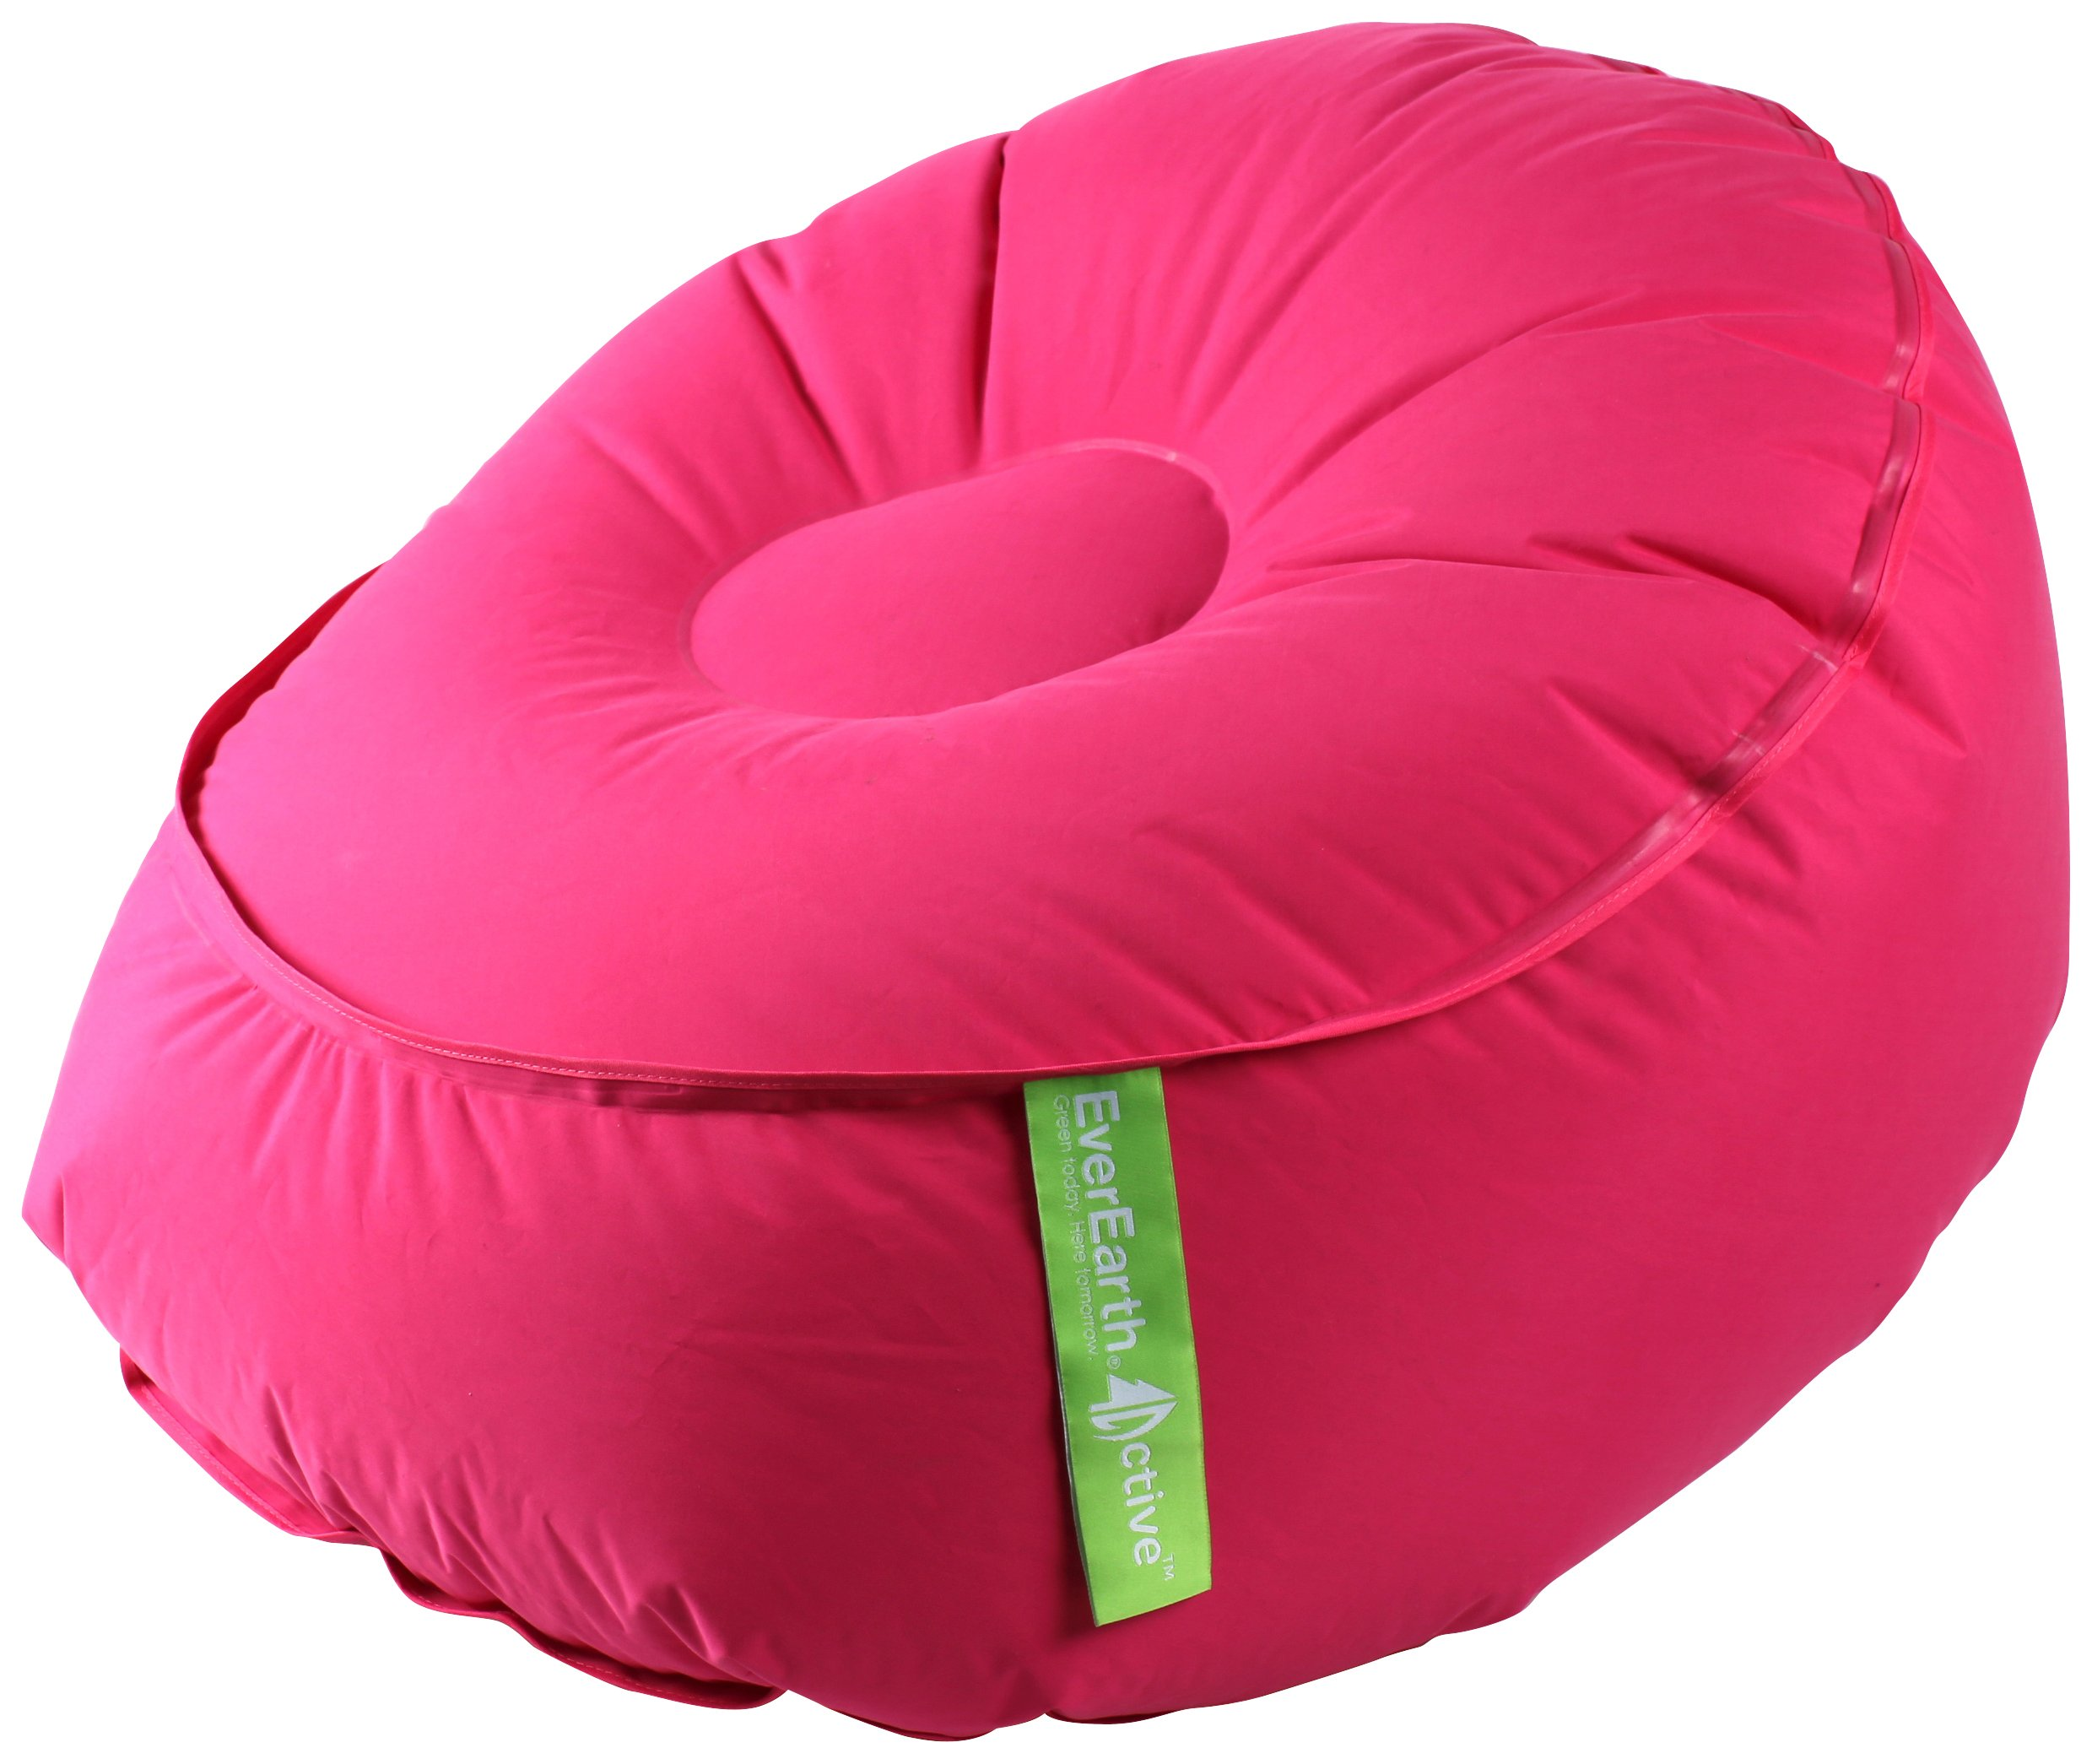 EverEarth Ezair Rangi Inflatable Chair, Pink by EverEarth